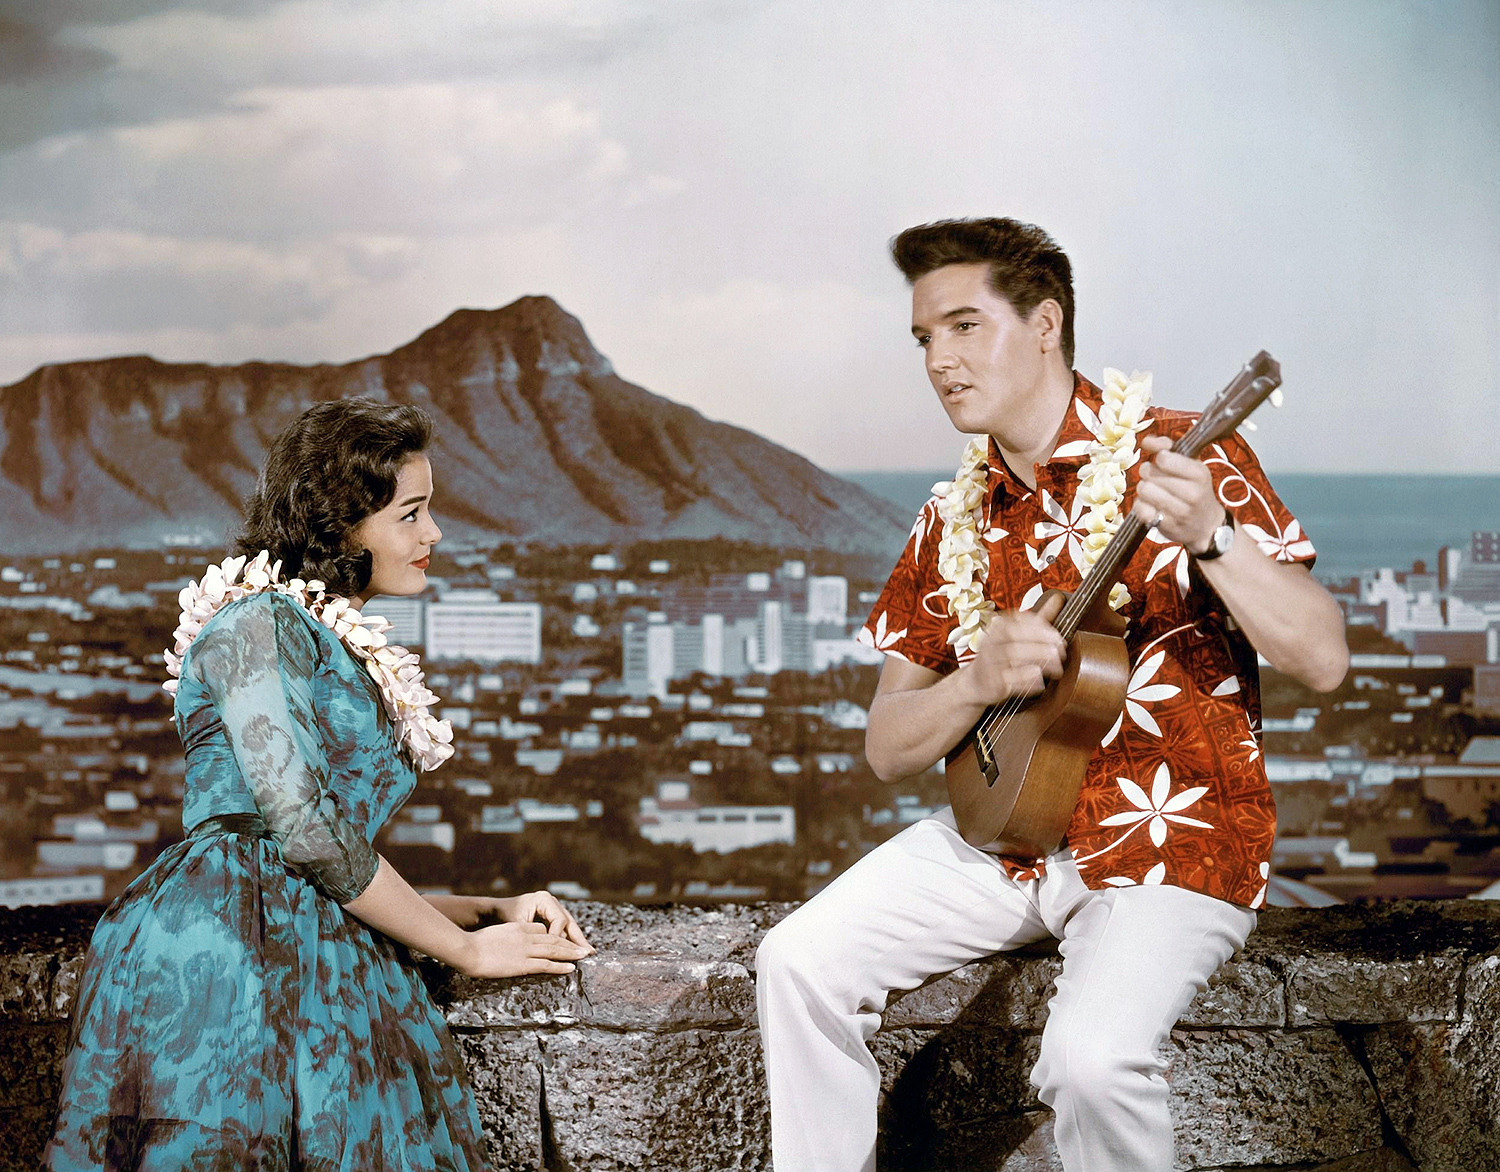 10 Elvis Presley Movies You Need to Watch